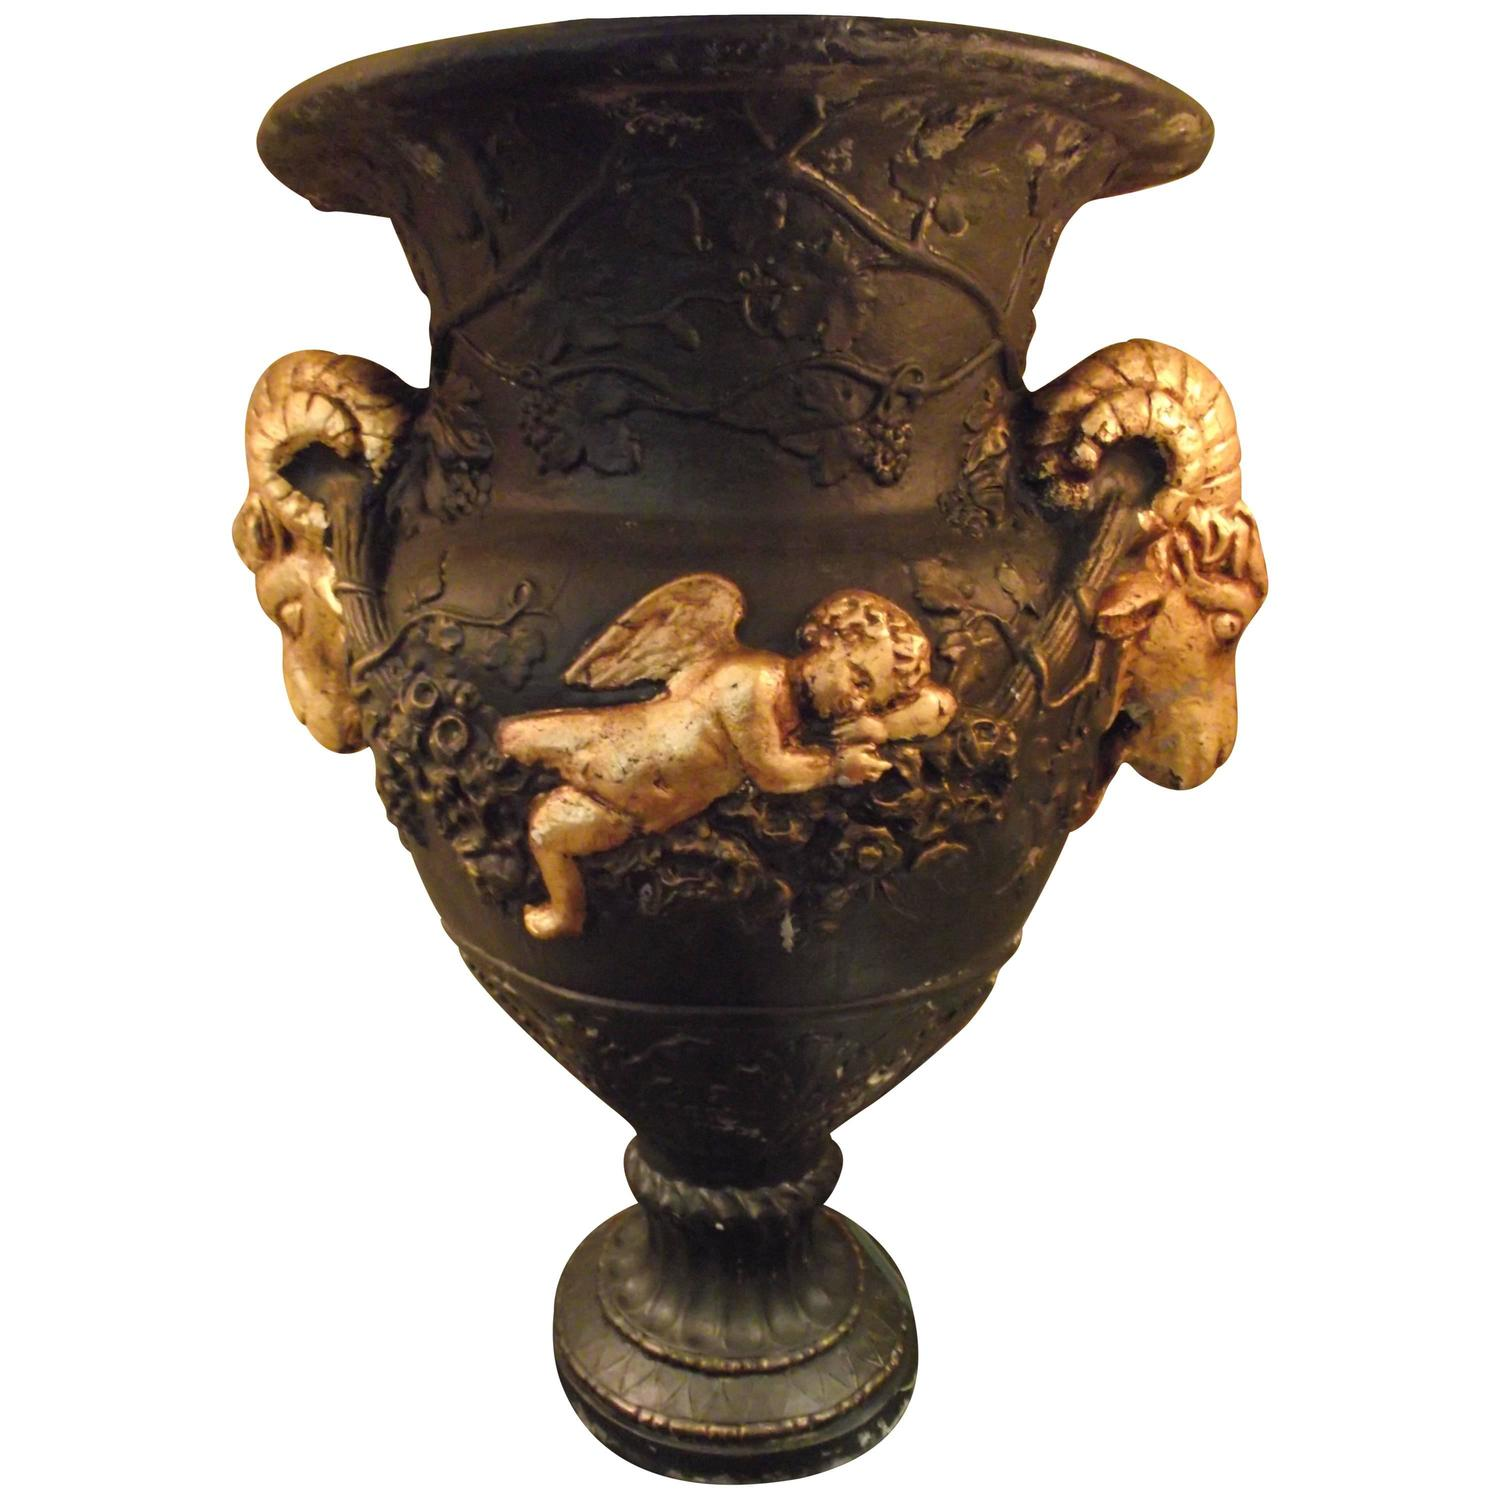 Large ram 39 s head and cherub urn in brown black and gold leaf finish at 1stdibs - Large decorative vases and urns ...